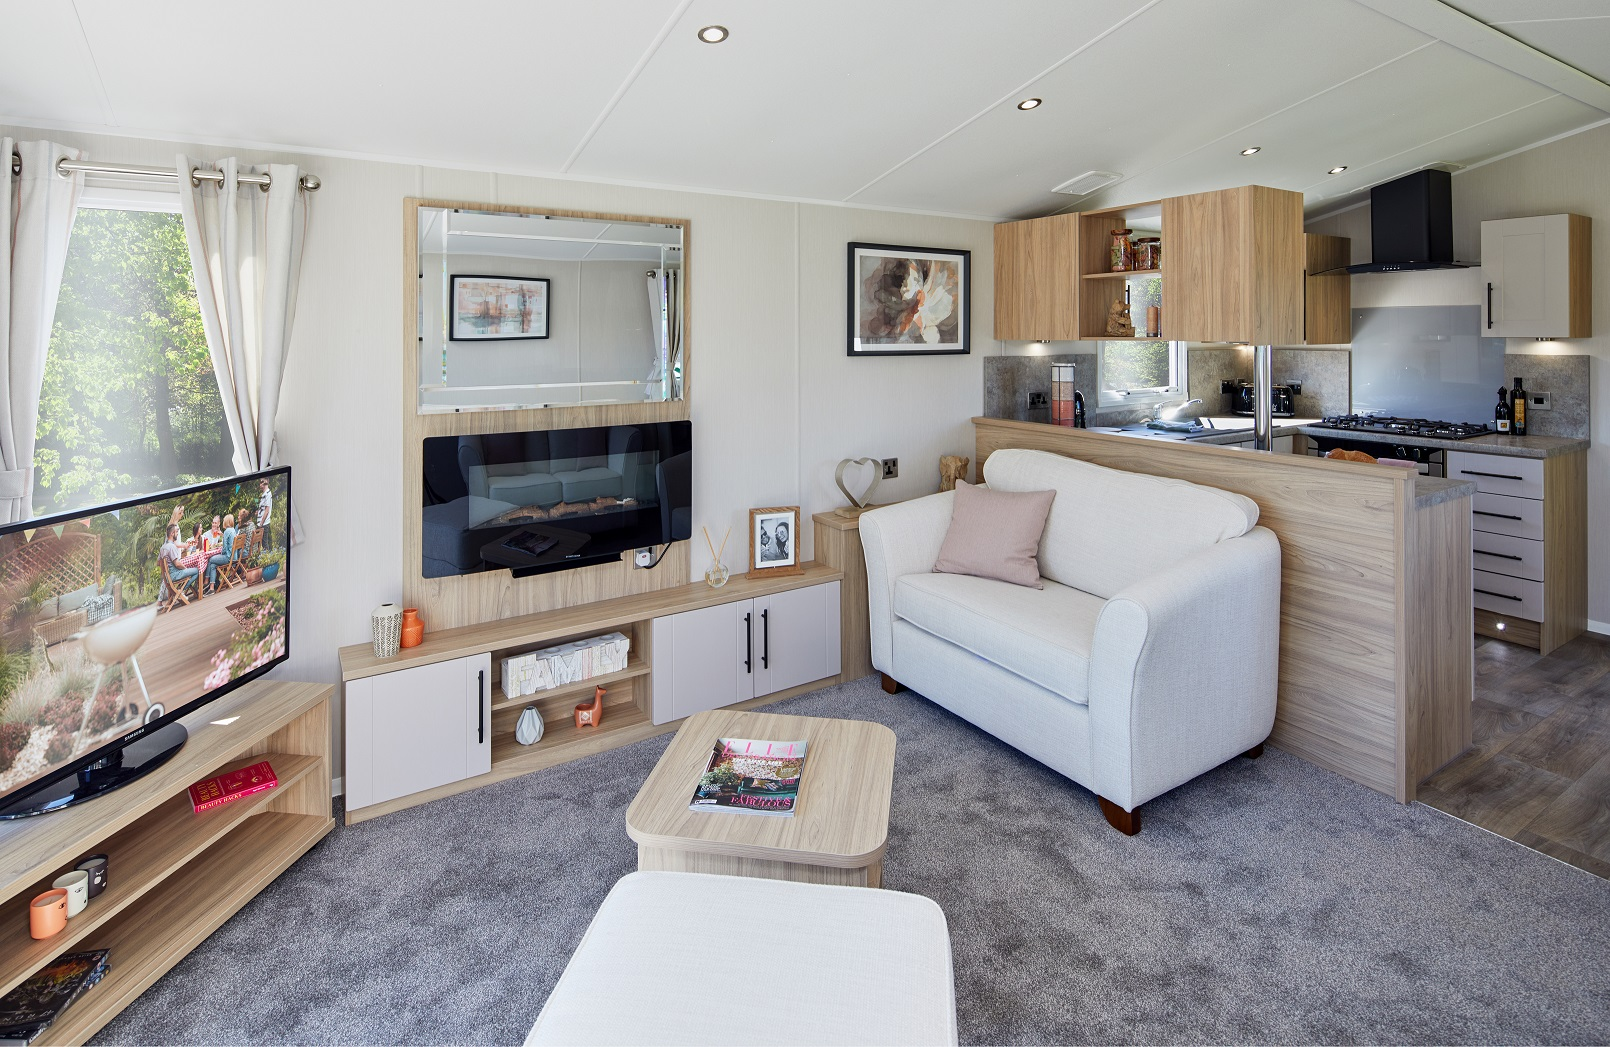 Willerby Manor: New Static Caravans and Holiday Homes for Sale, Langley Moor, Durham Large Image 2